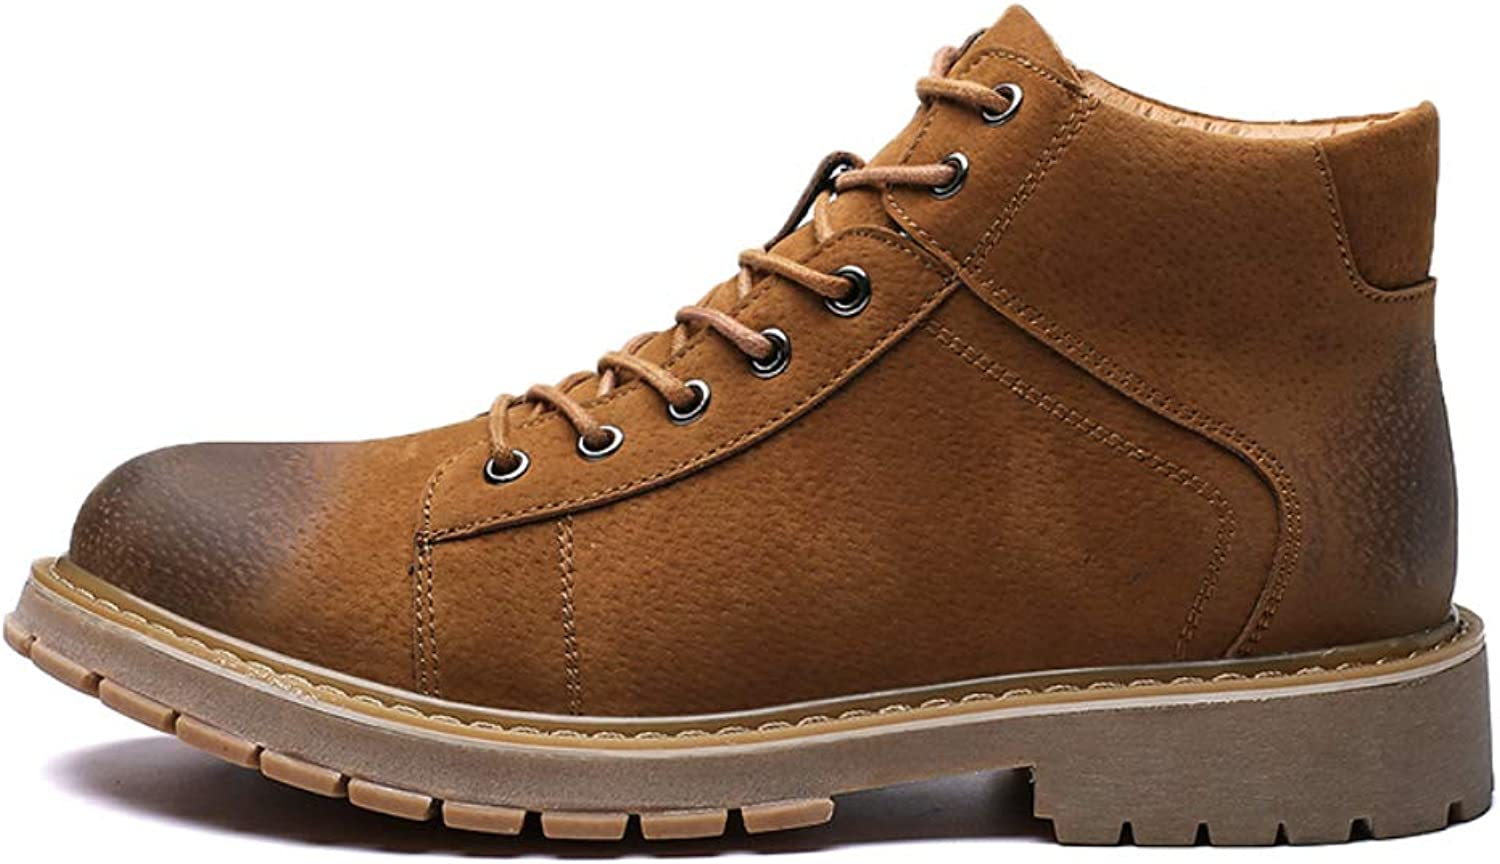 Men's Leather Waterproof Work Boots Rubber Outsole Safety Boots